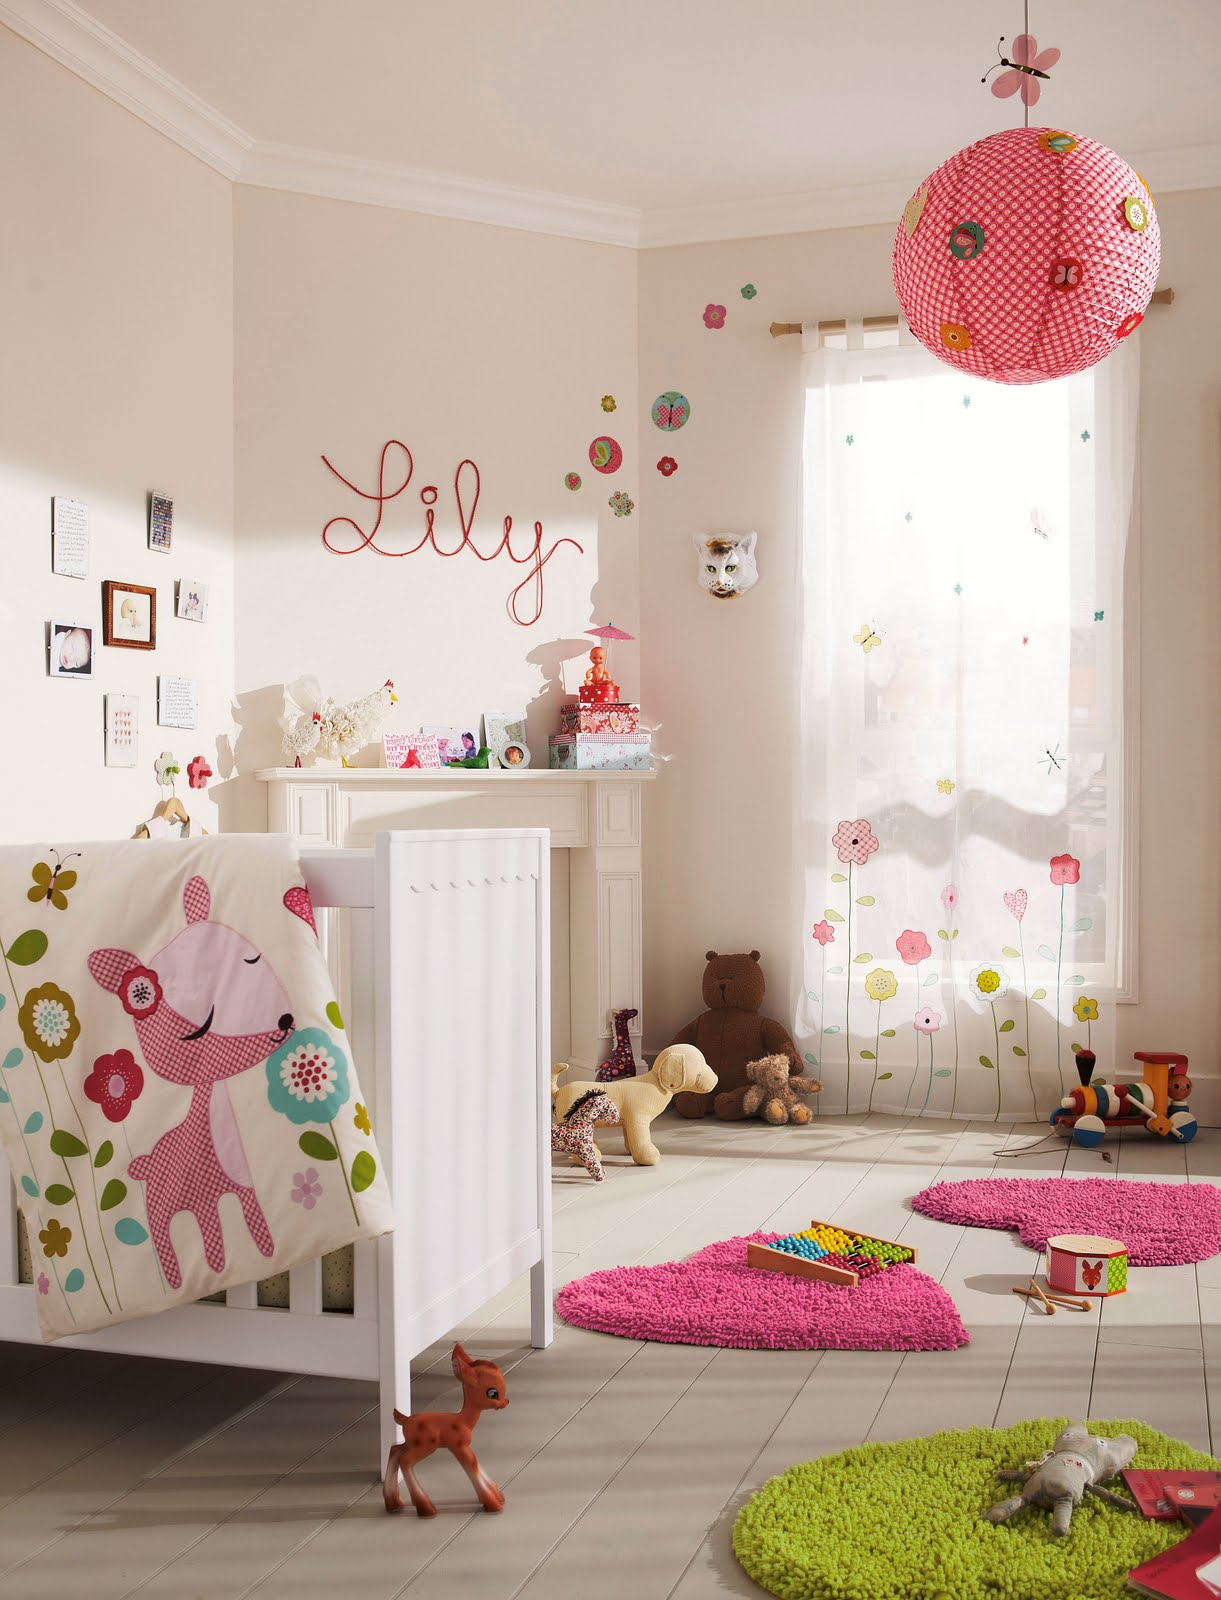 Pompons ch rie sheriff blog lifestyle mode famille for Idee decoration chambre fille